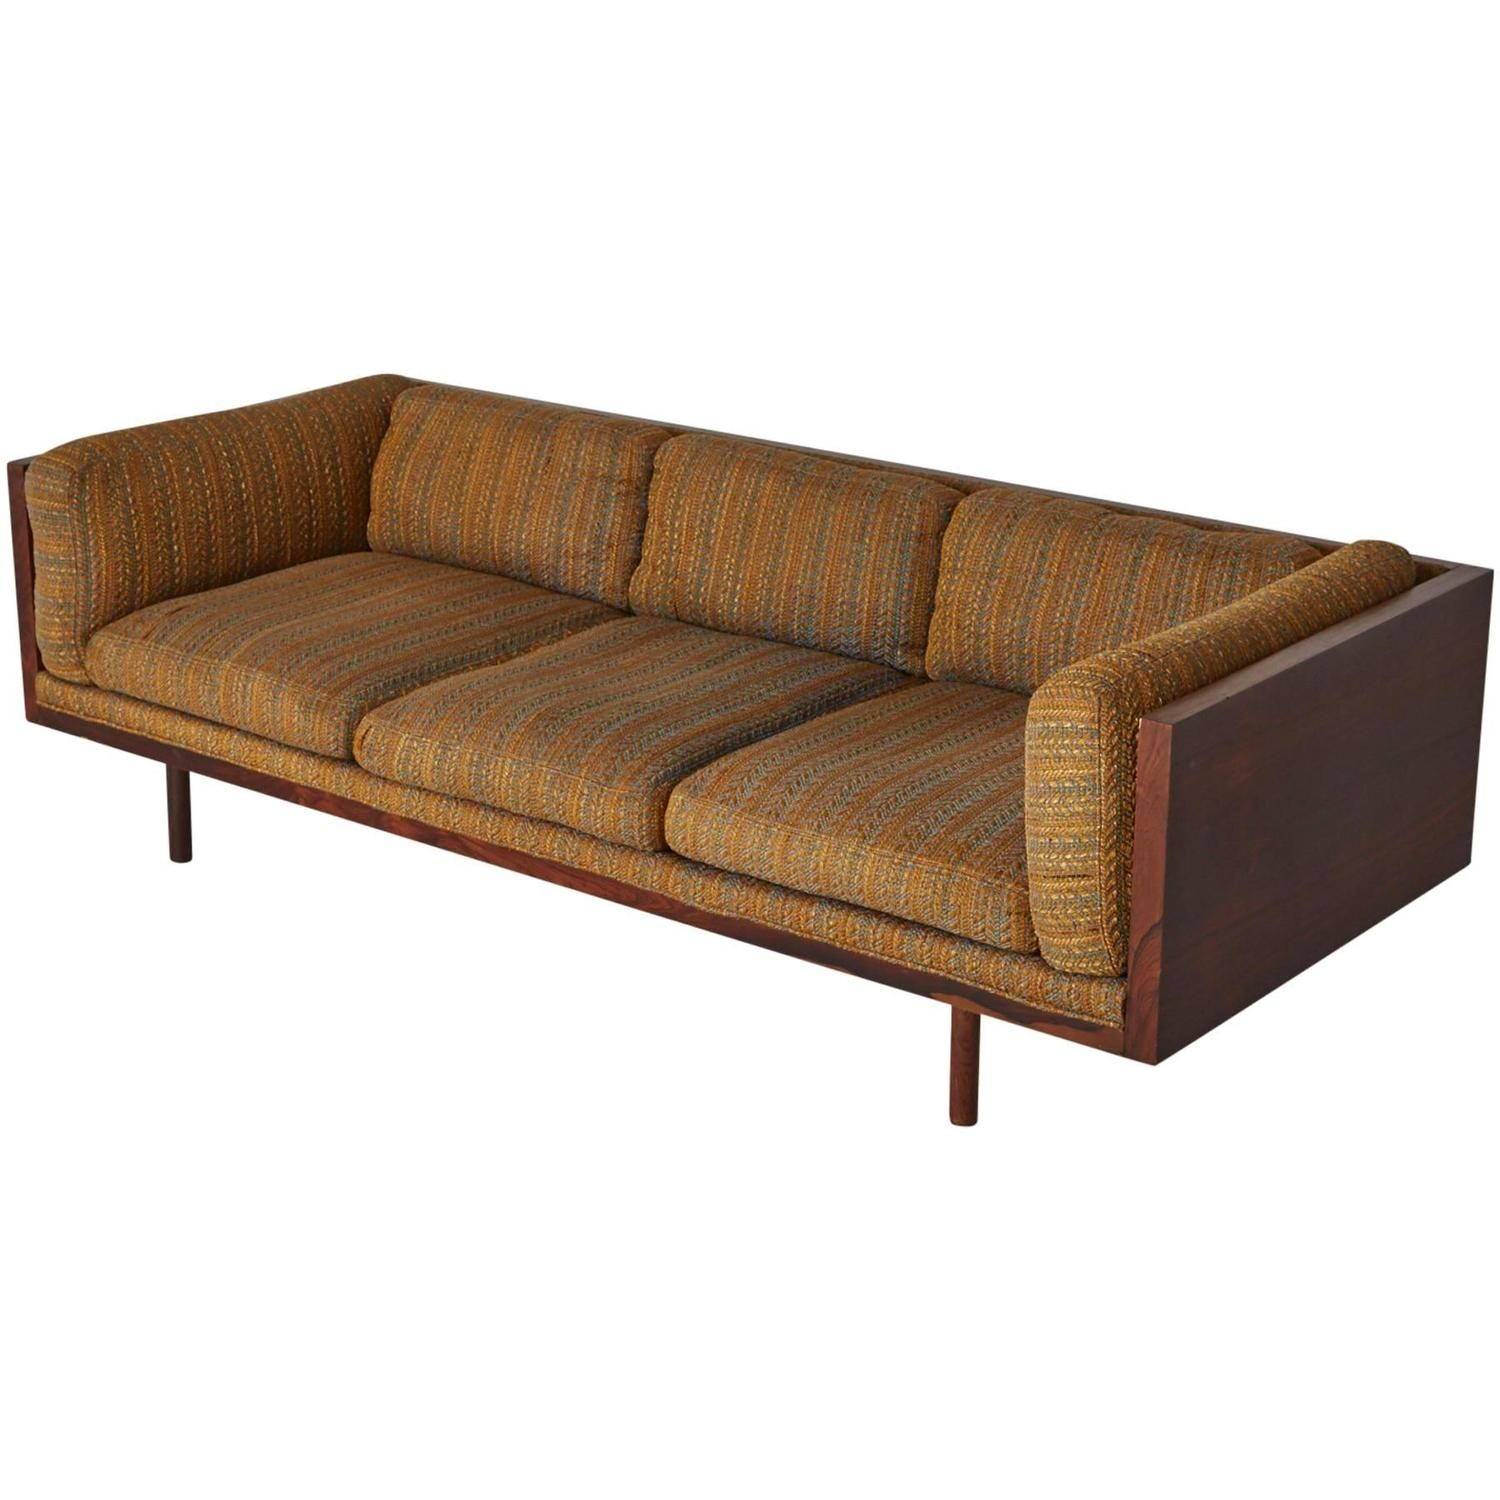 Rosewood Case Sofa By Milo Baughman For Thayer Coggin On Sale